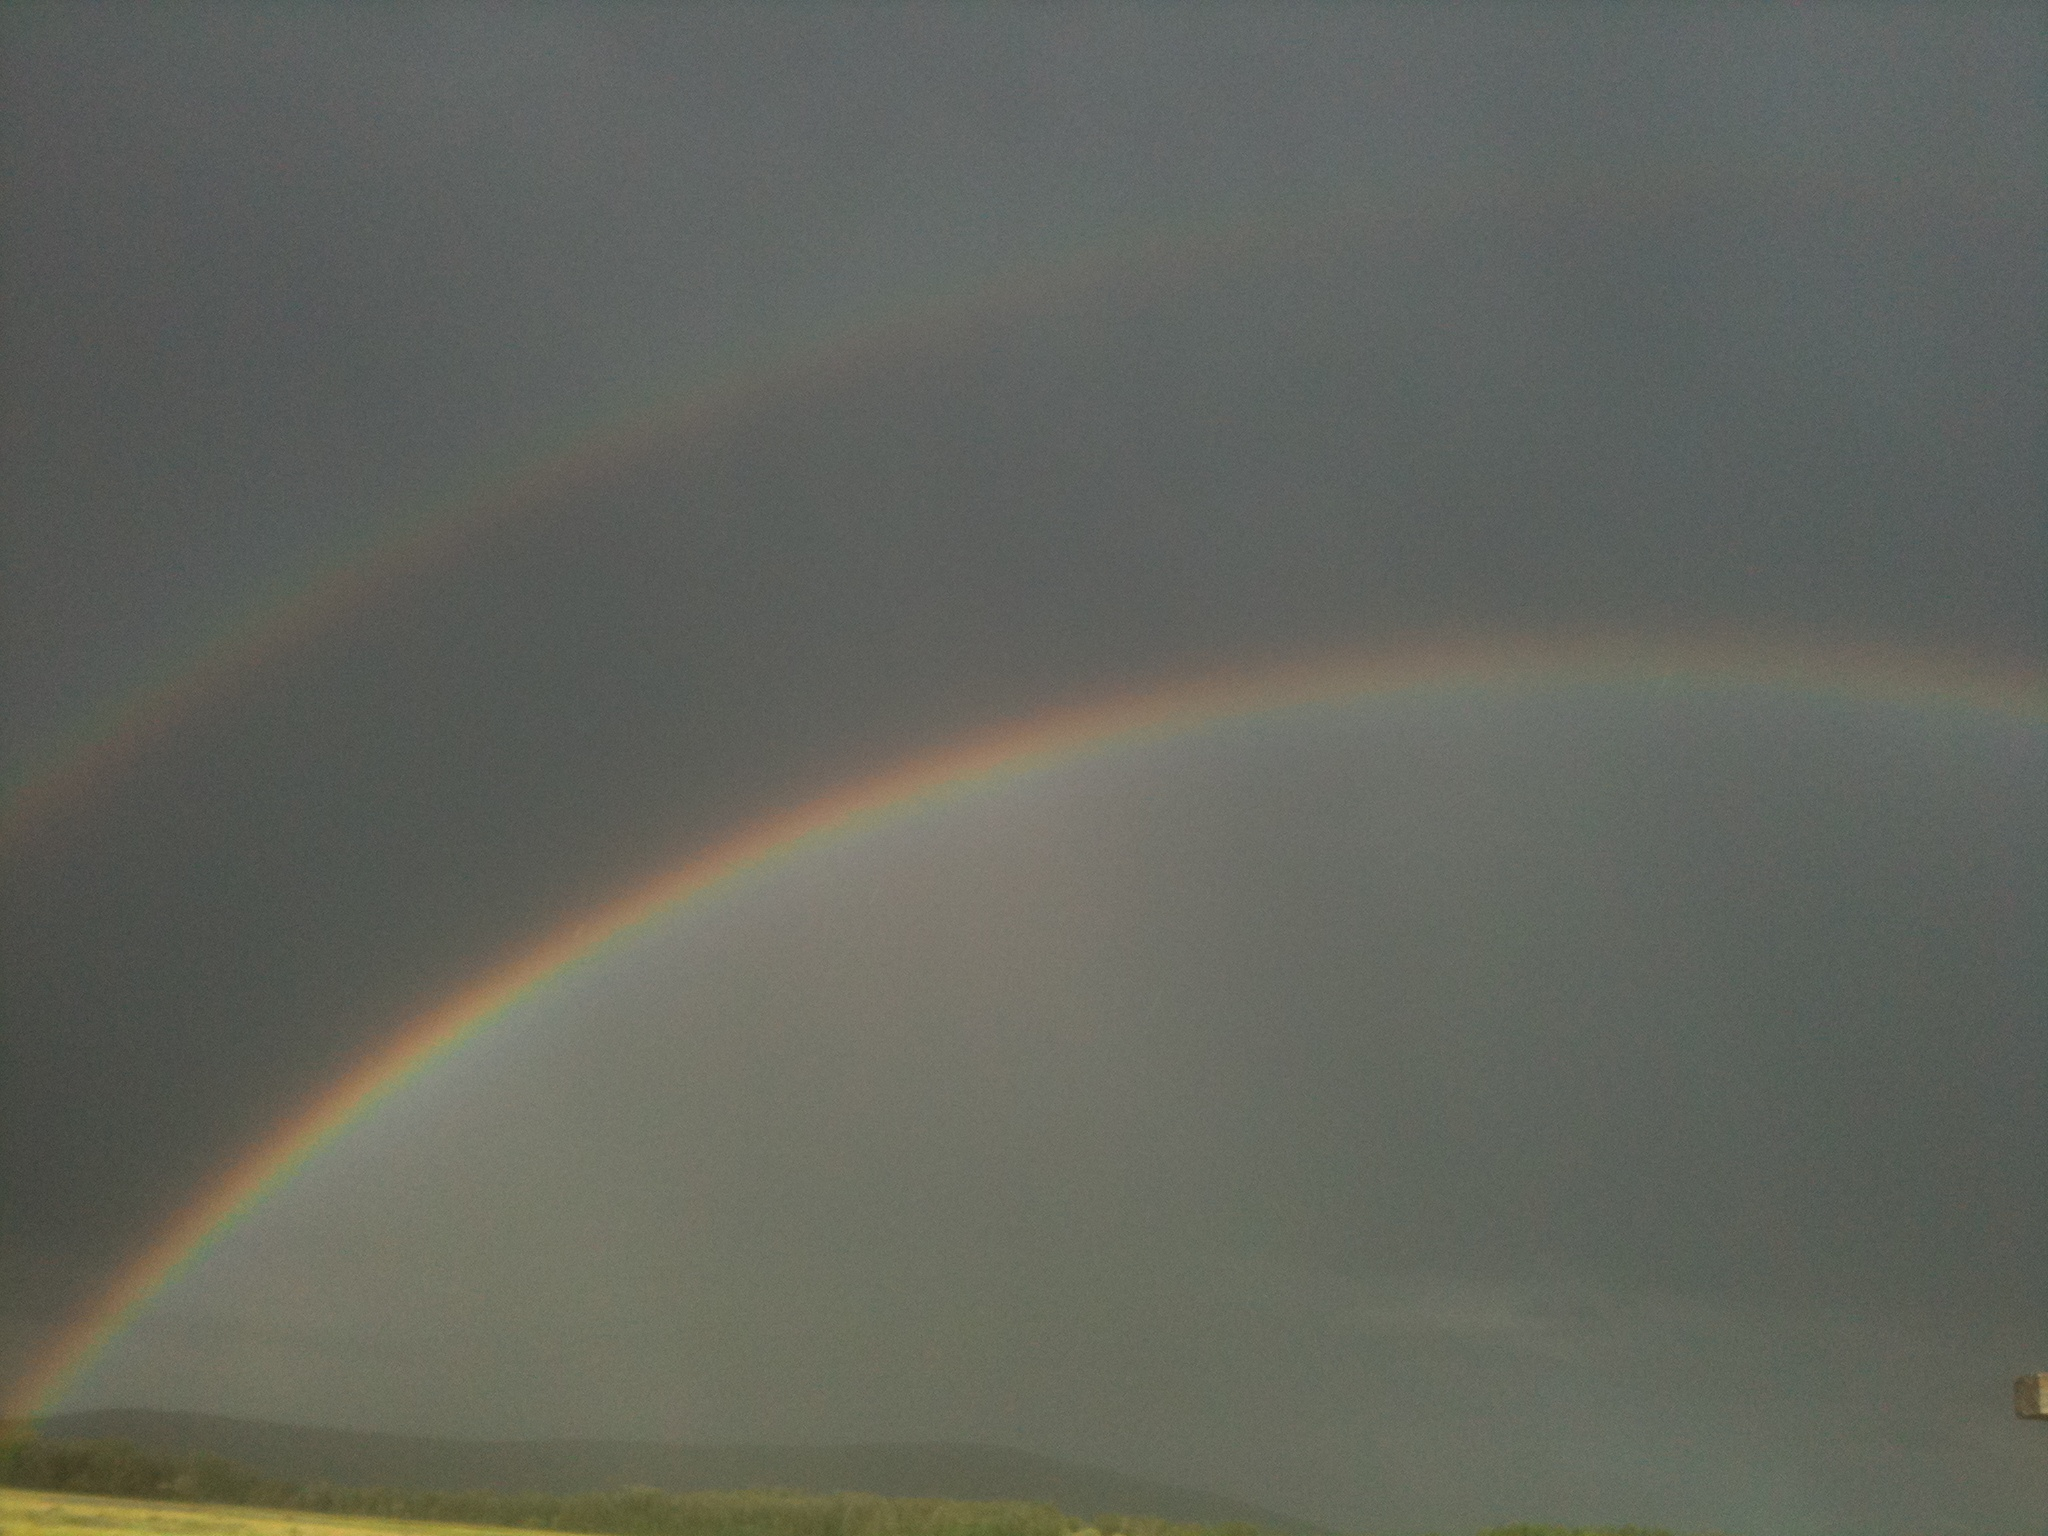 Double Rainbow Meaning Pure Glory